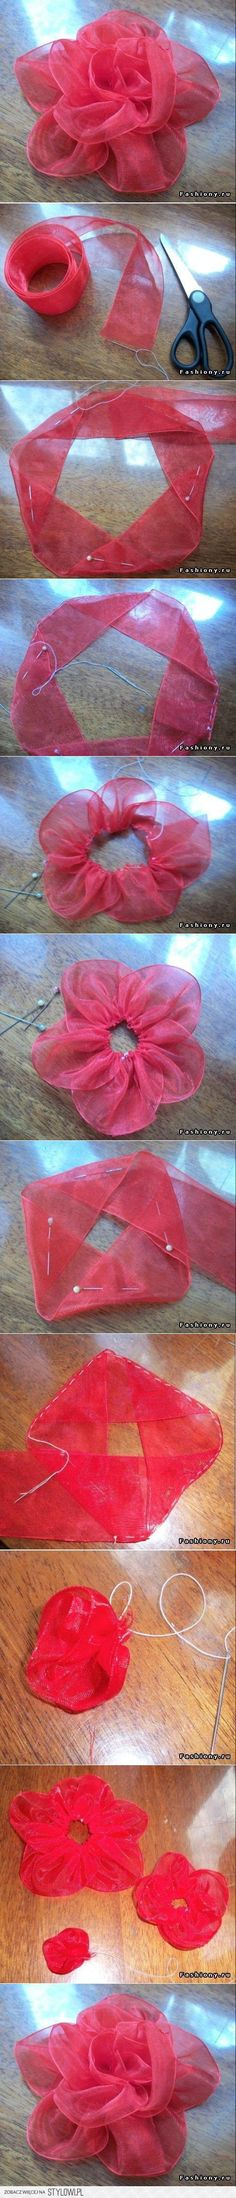 DIY Ribbon Tape Flower DIY Projects | UsefulDIY.com na Stylowi.pl